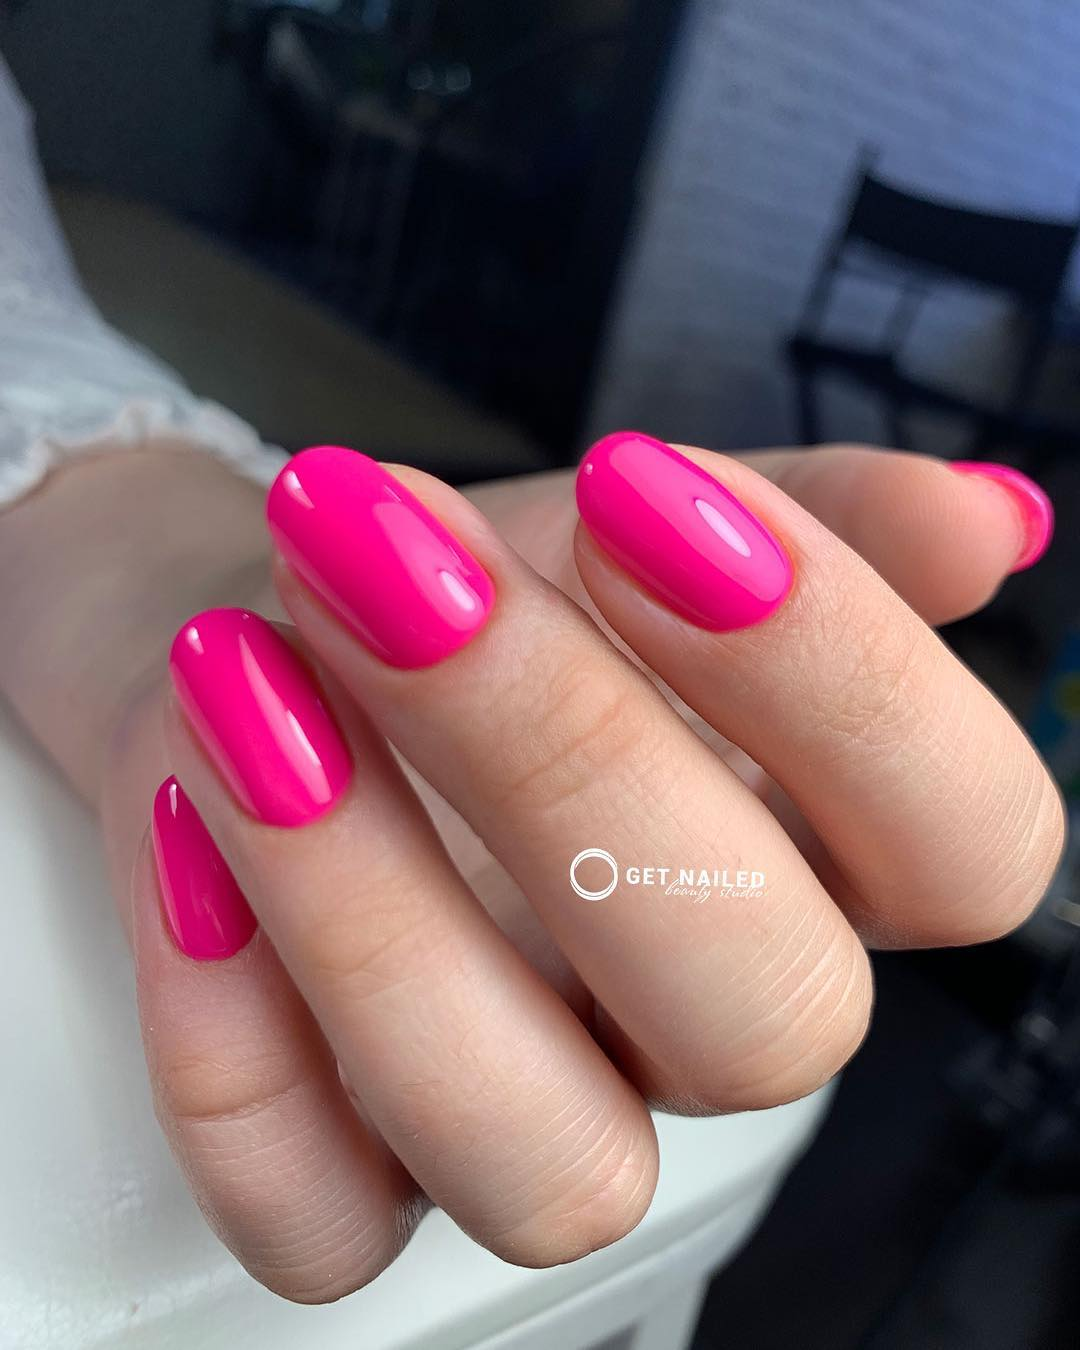 Fuchsia madness Nails done by KarinaYou can book your appointment on getnailed.co, through DM, WhatsApp +34 680 576 151 or simply by leaving a comment ..luxiogel